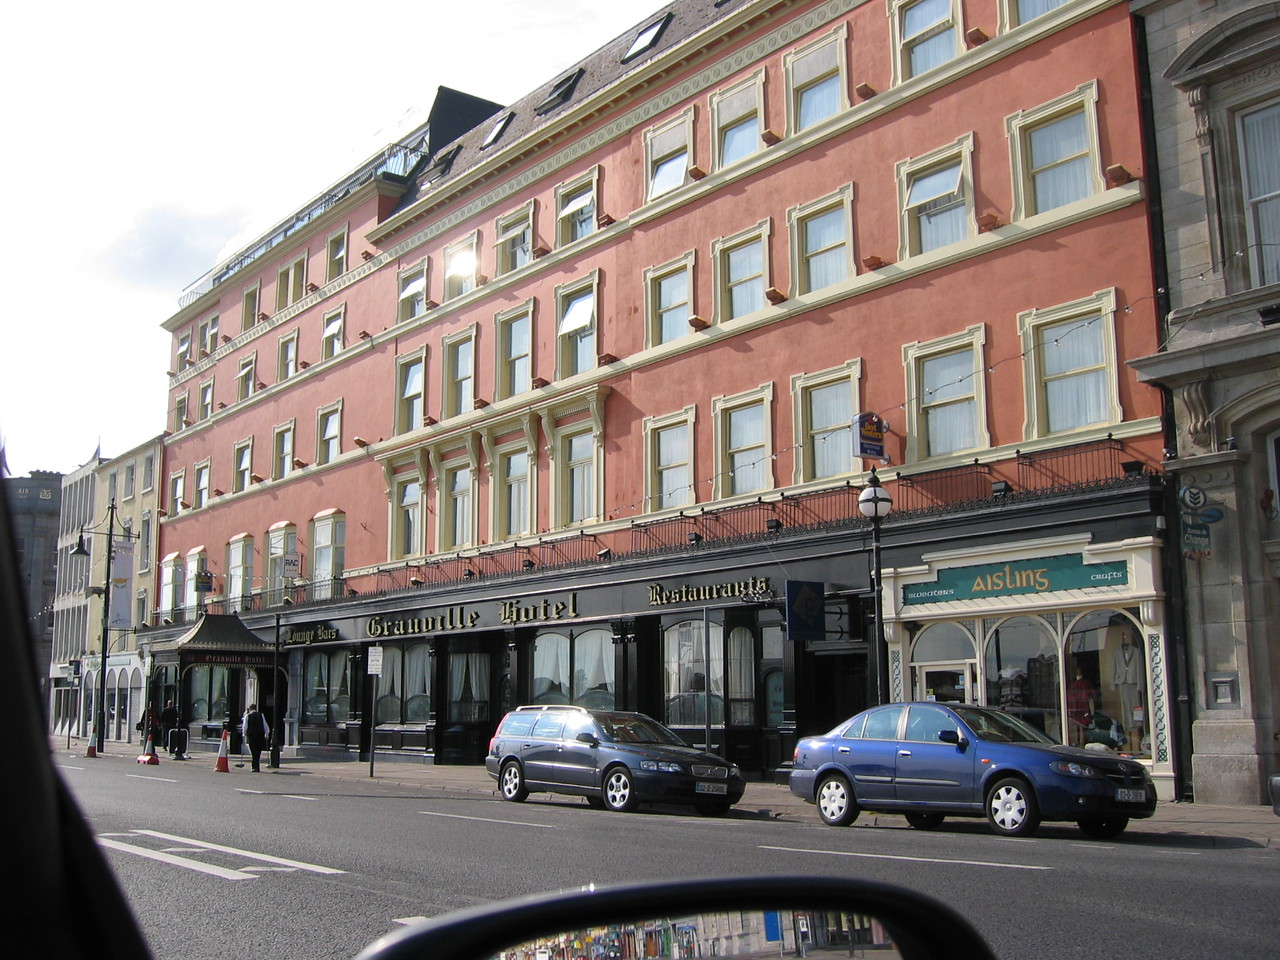 Granville Hotel, Waterford, County Waterford